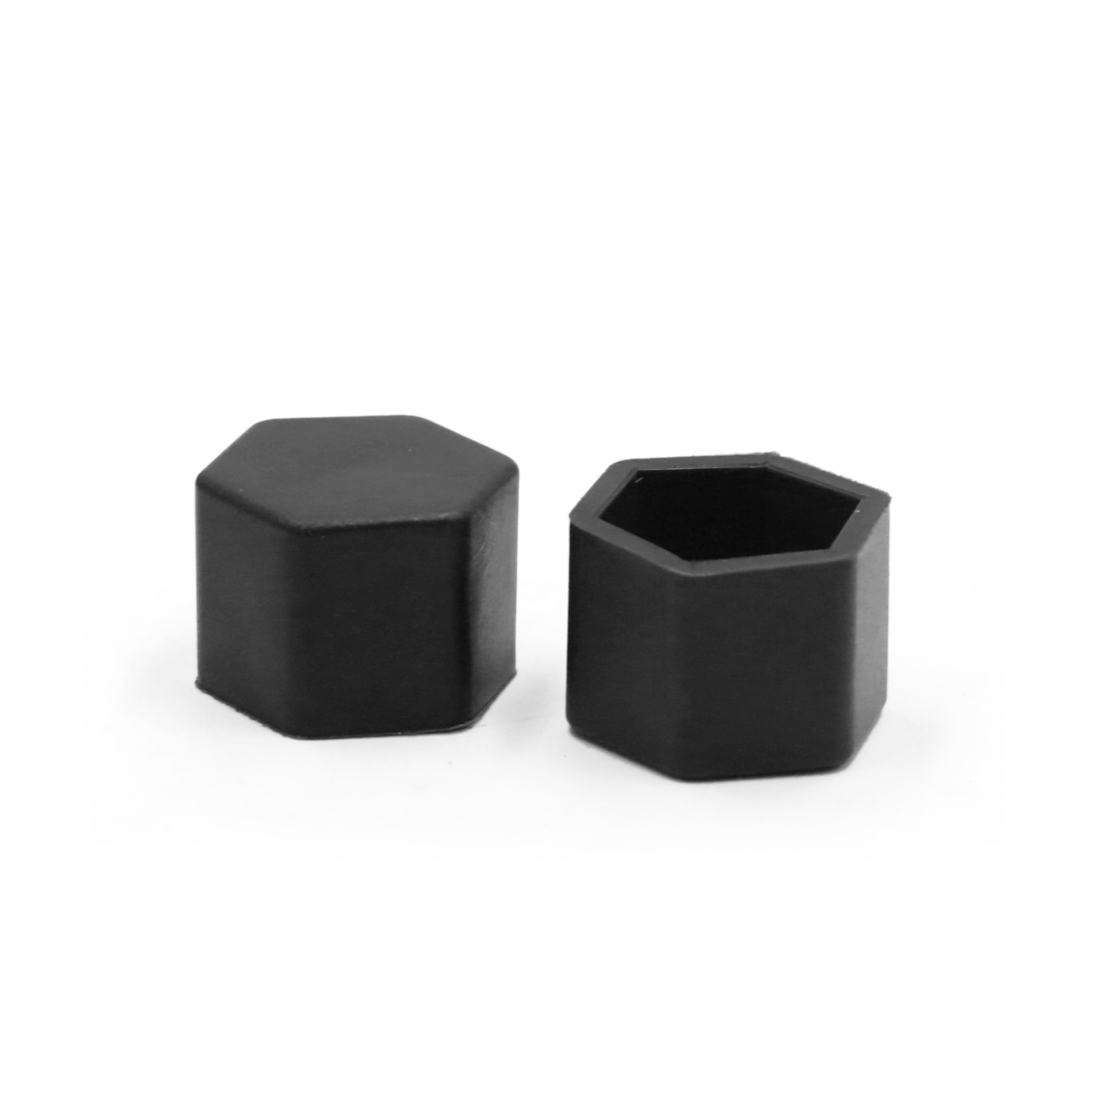 20Pcs Black Silicone 19mm Car Wheel Nut Lug Hub Covers Screw Dust Protect Caps - image 2 of 4